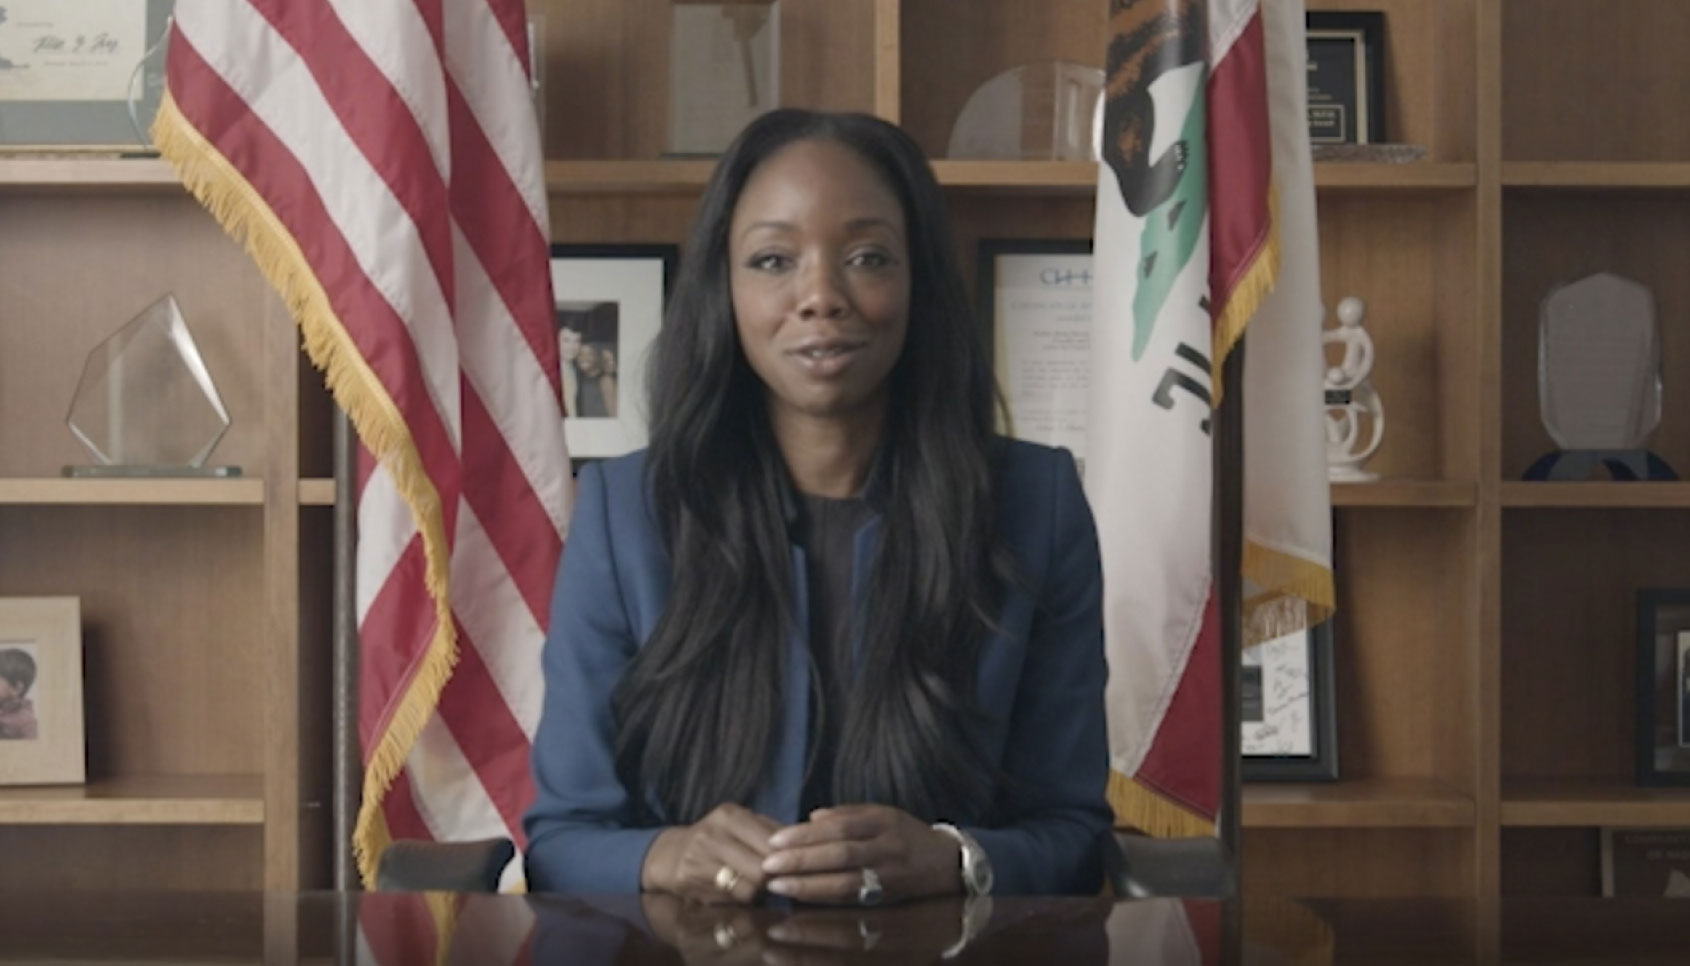 Dr. Nadine Burke Harris, California Surgeon General, speaks about vaccine safety and her choice to get the COVID-19 vaccine.